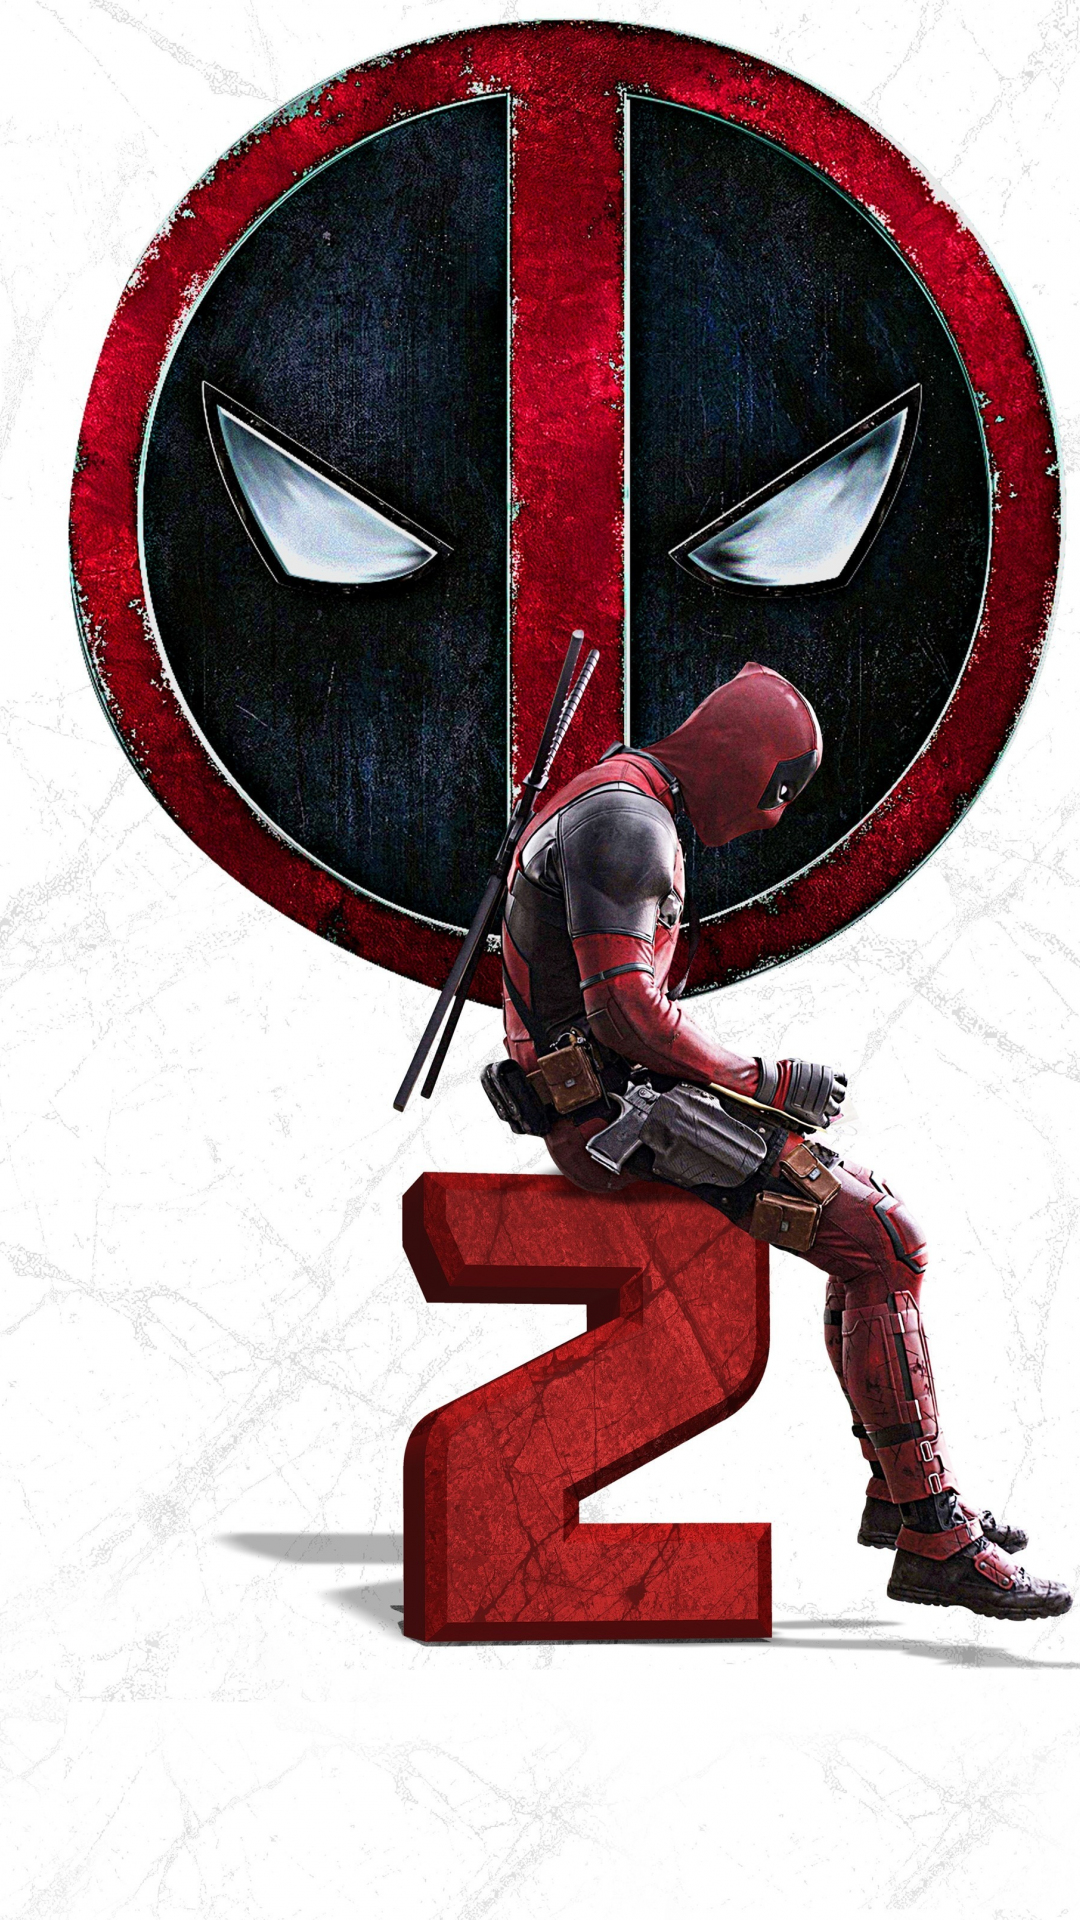 Wallpaper 4k Samsung Galaxy S8 Girls Download 1080x1920 Wallpaper Deadpool 2 2018 Movie